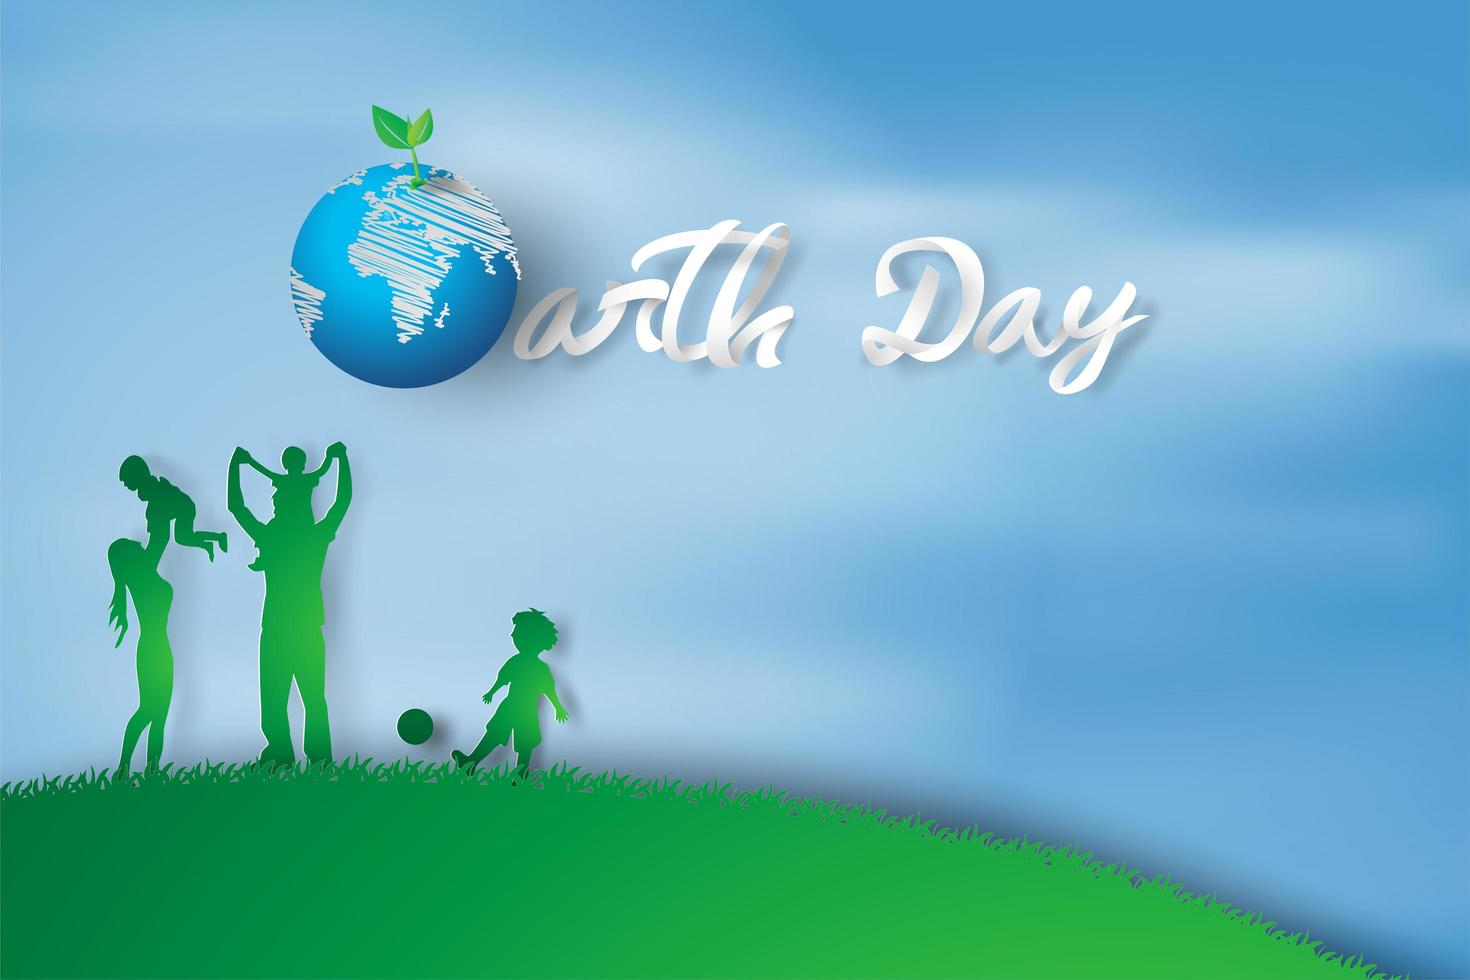 Earth day with Family enjoy fun Design for greeting cards. Ecology environment banner vector